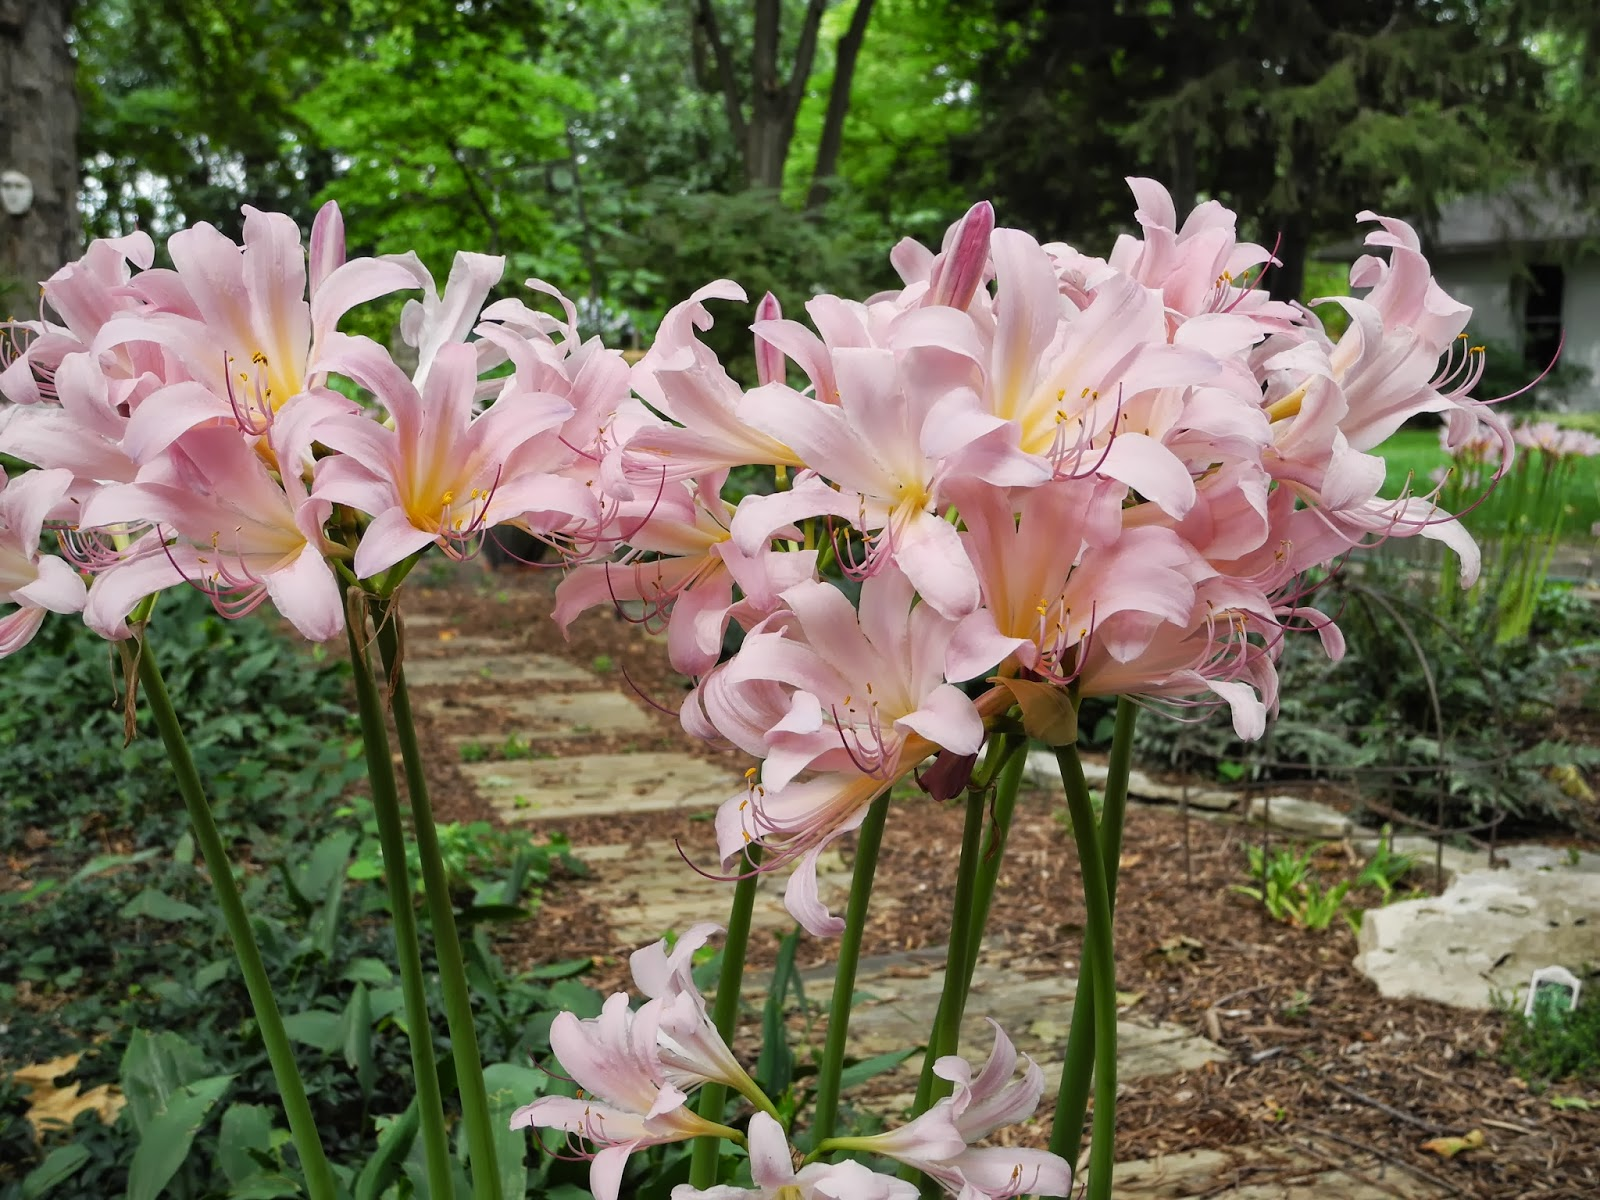 naked ladies bulbs buy jpg 422x640